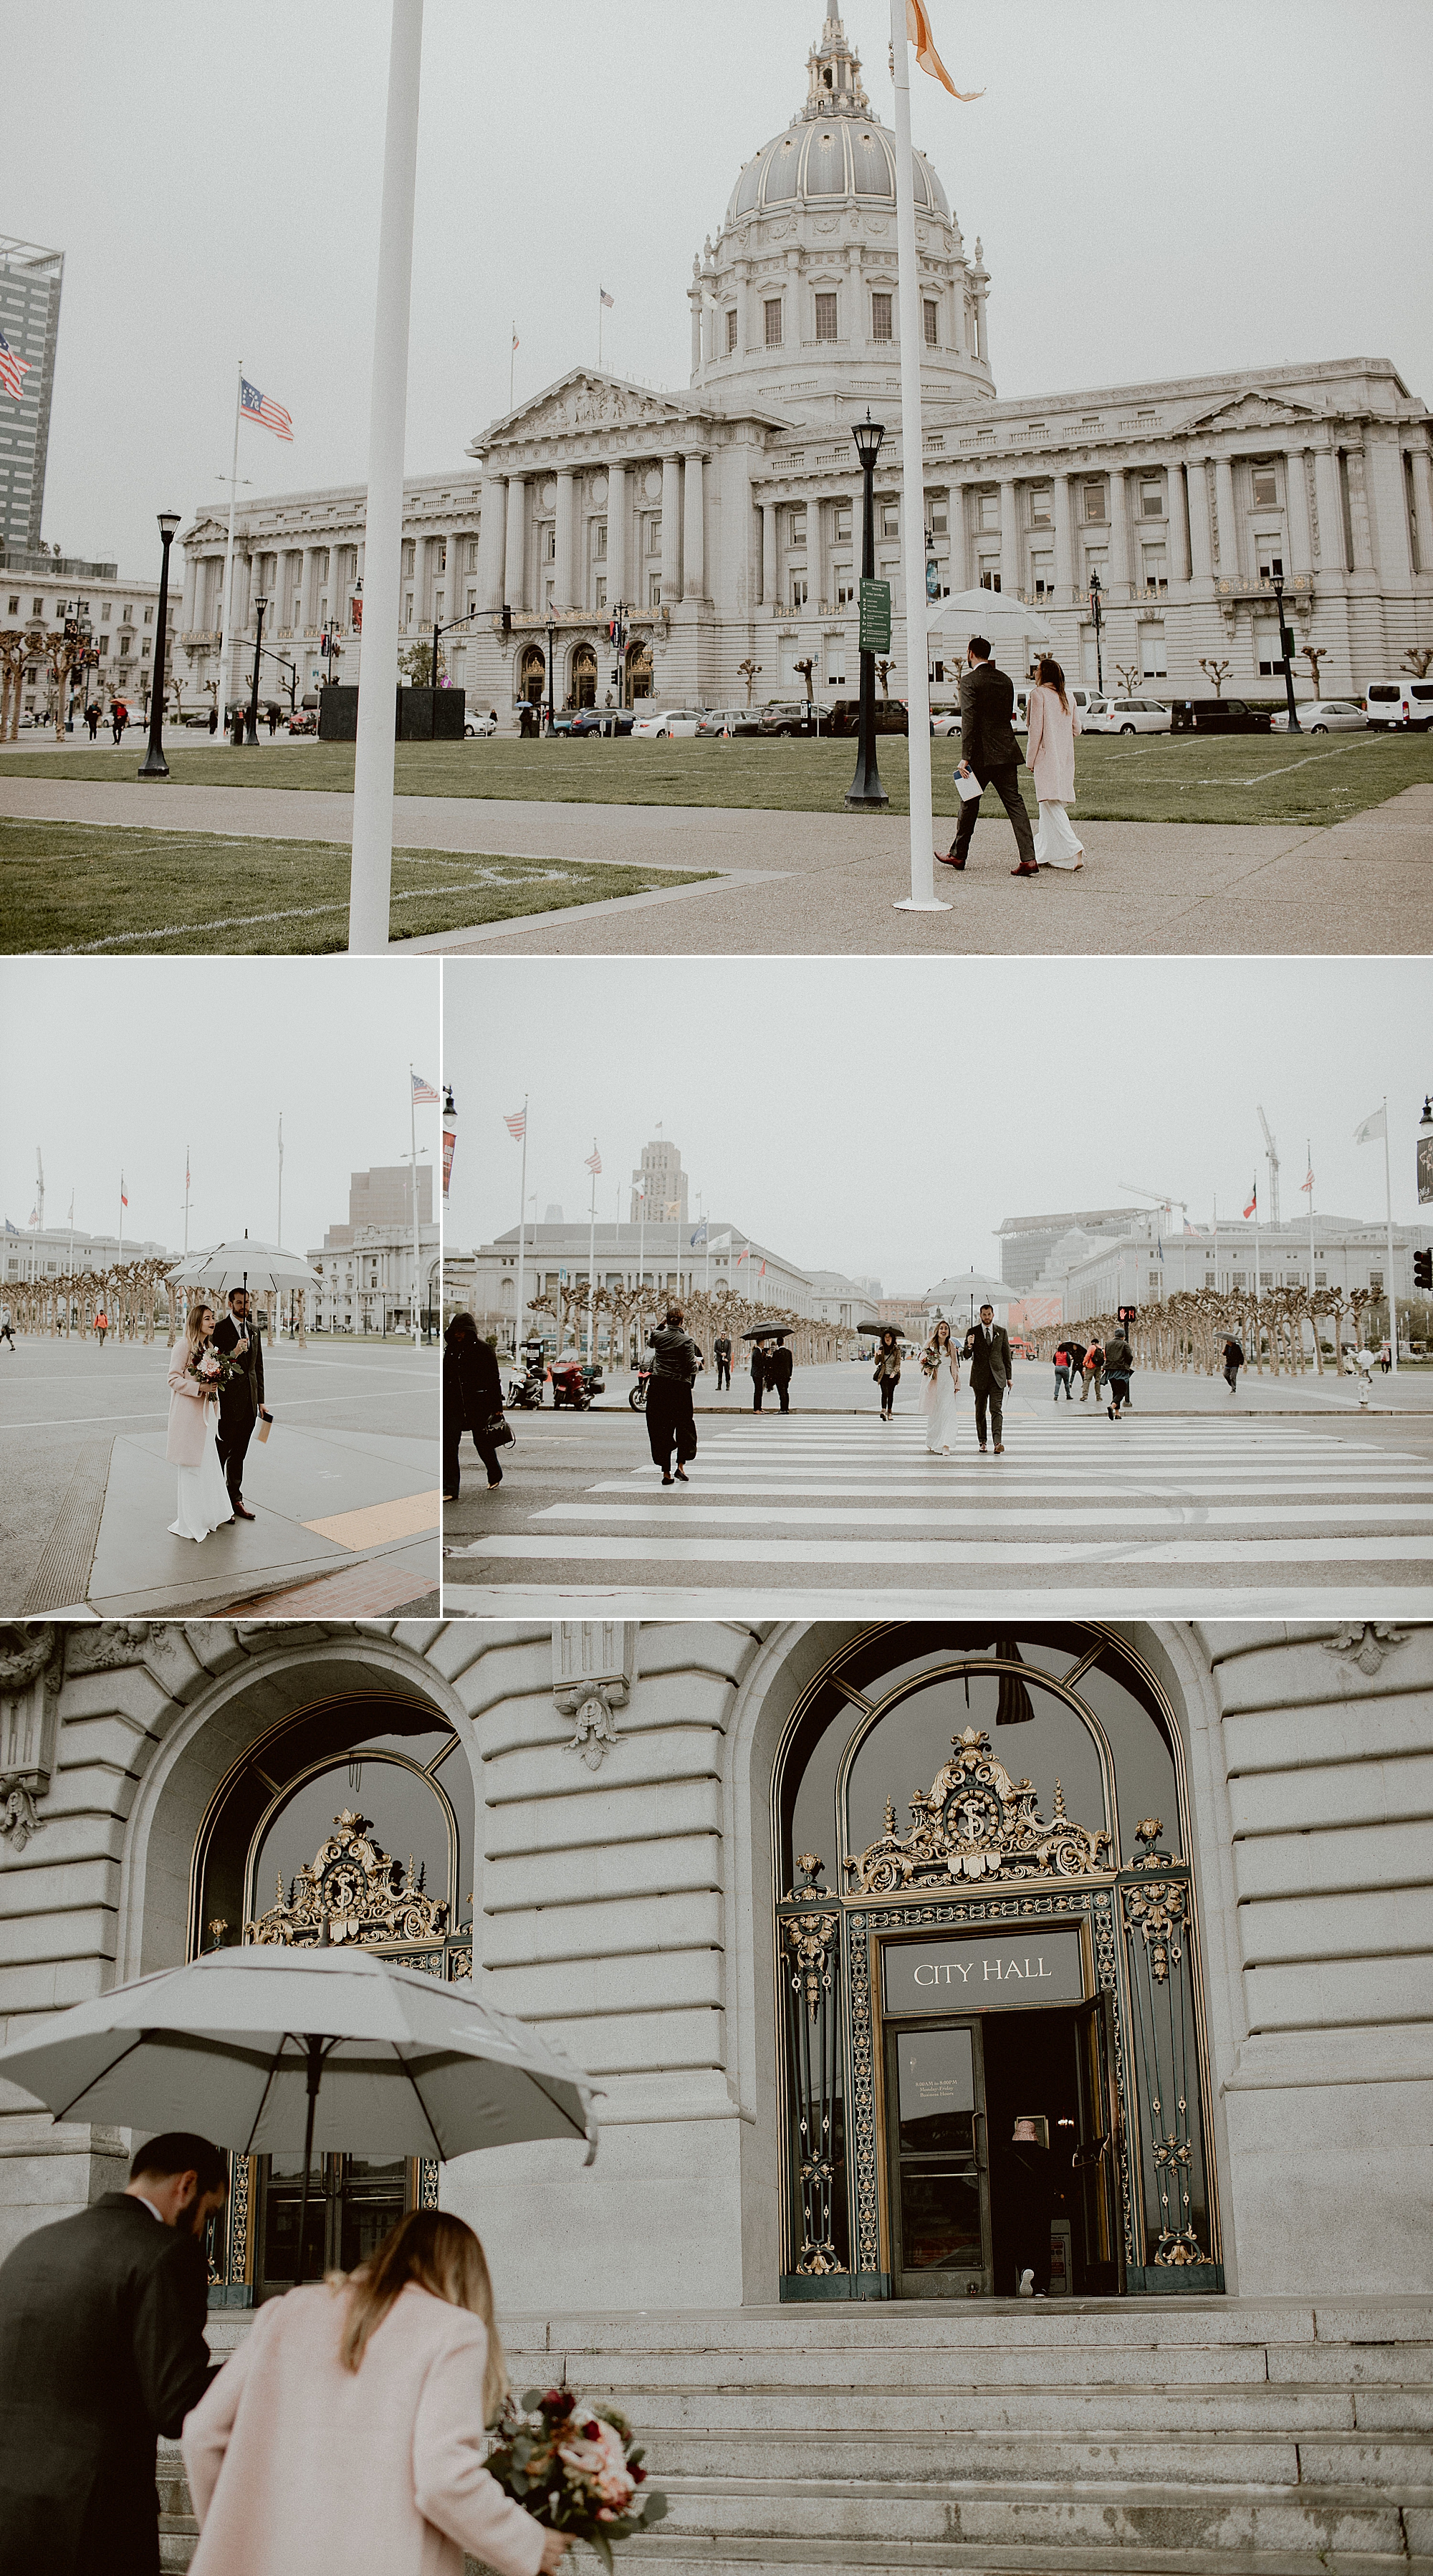 Intimate San Francisco City Hall Wedding | Gretchen Gause Photography #theknotwedding #sfcityhallwedding #sfwedding #sfweddingphotographer #sfelopement #intimatewedding #cityhallwedding